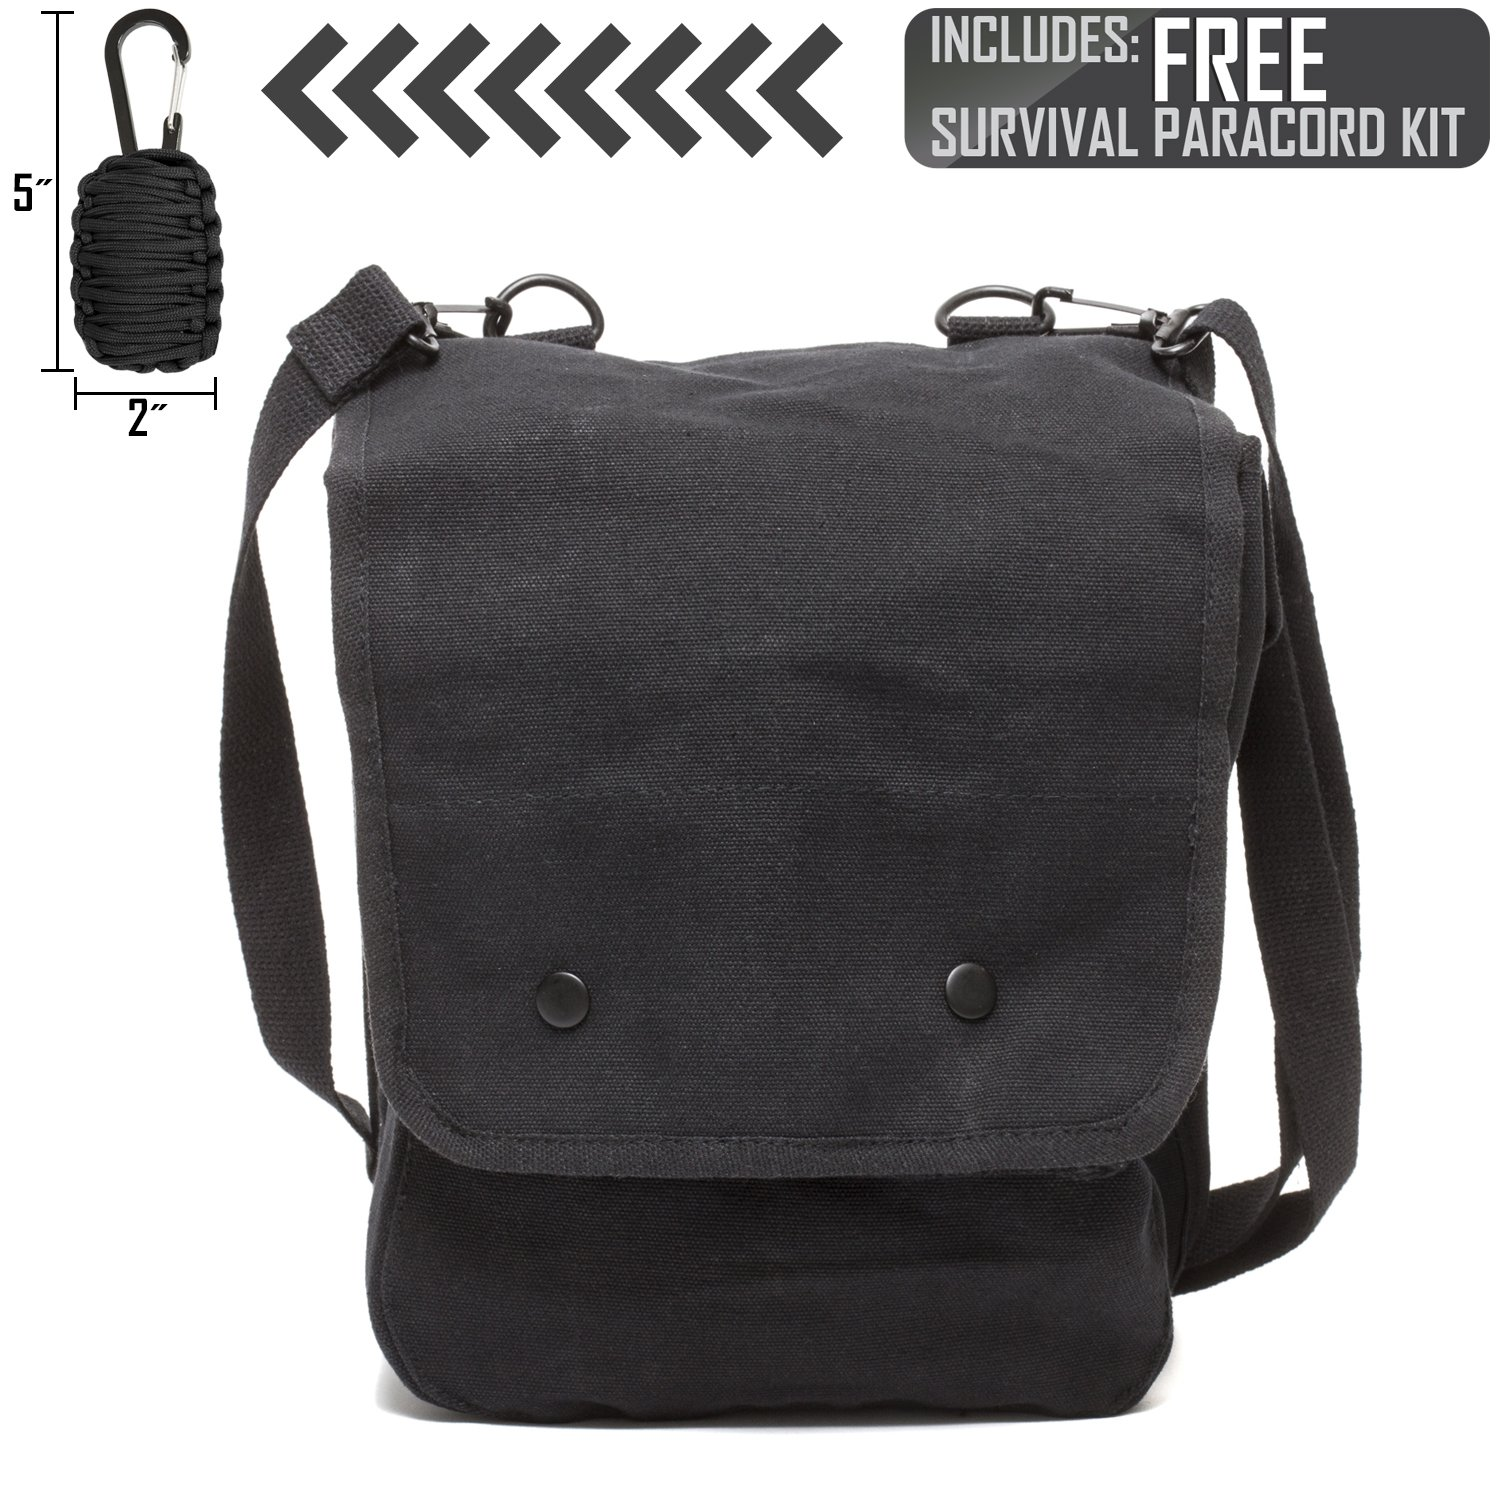 47034f865ea9 Army Force Gear Heavyweight Canvas Crossbody Travel Map Bag Case w FREE  Paracord Survival Tool